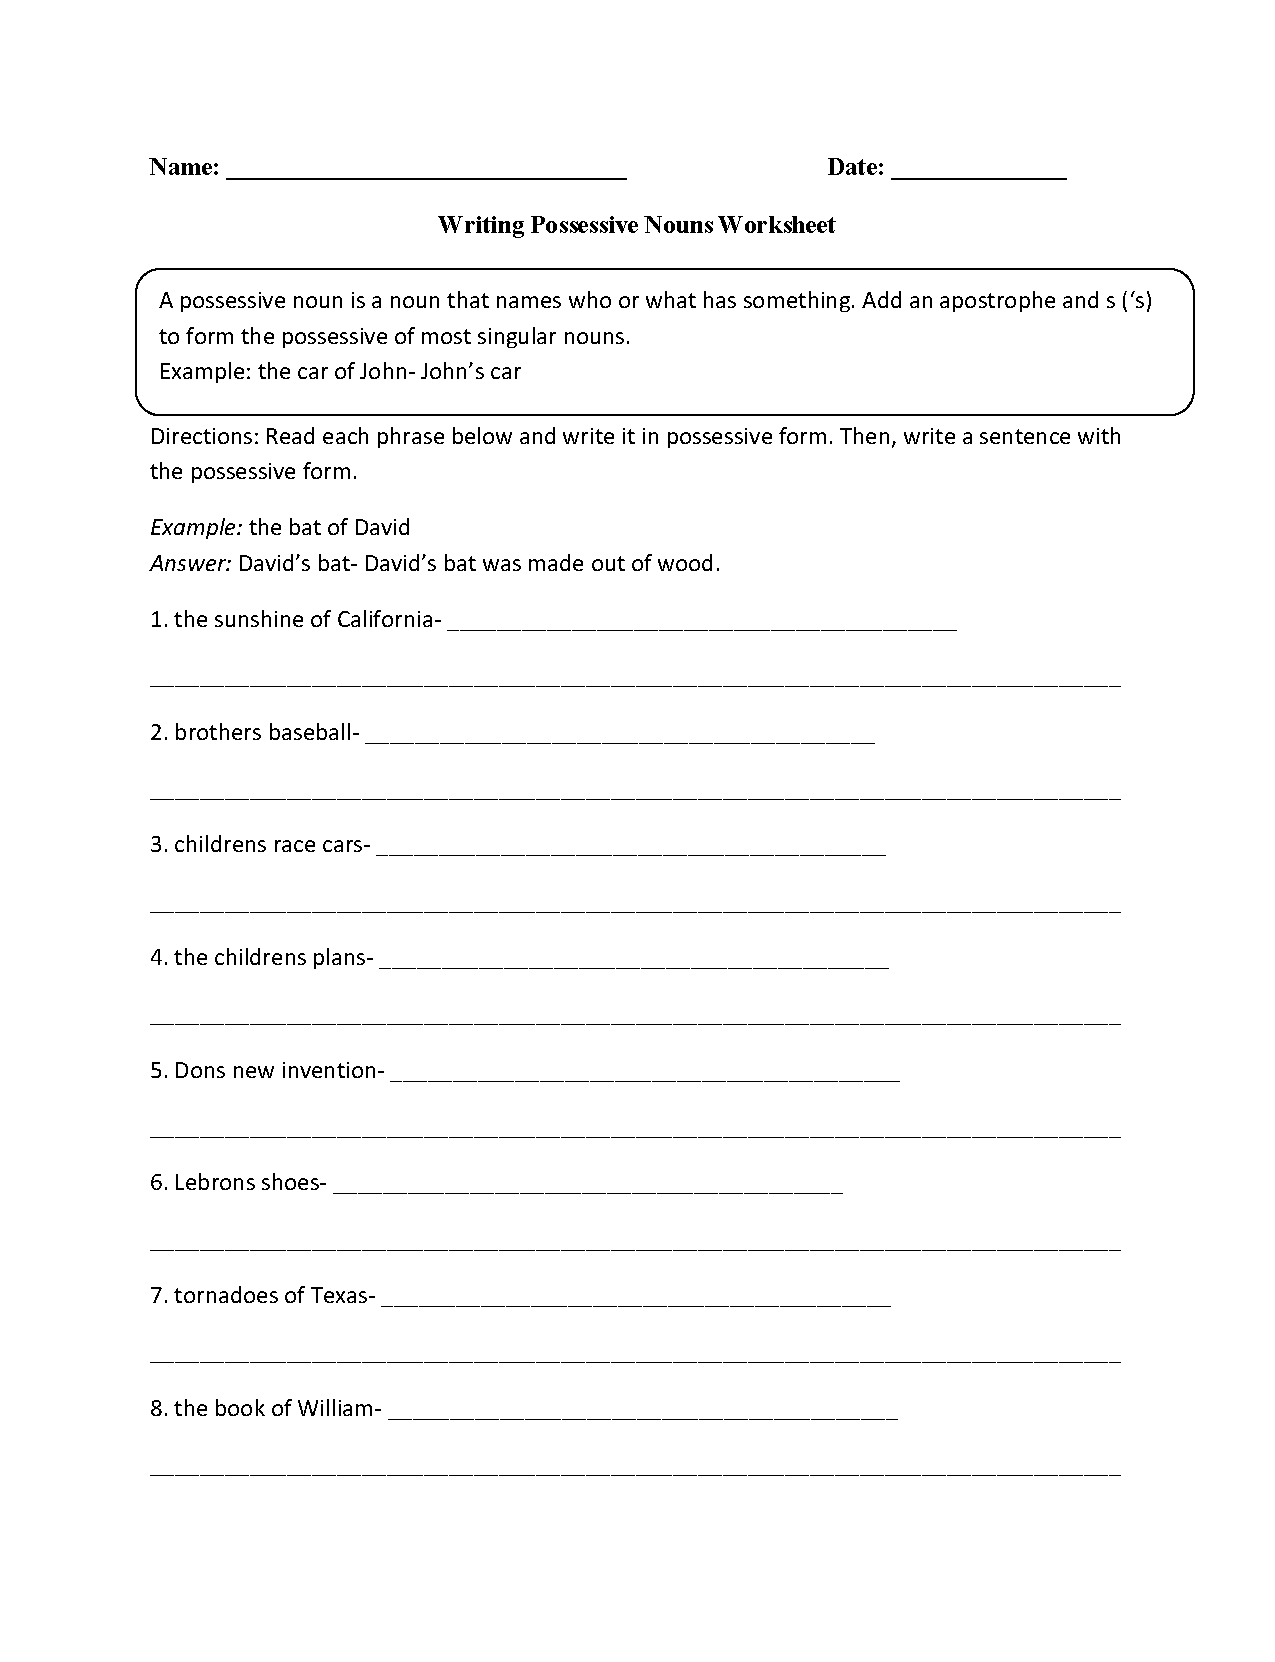 worksheet Noun Worksheets 4th Grade nouns worksheets possessive worksheet